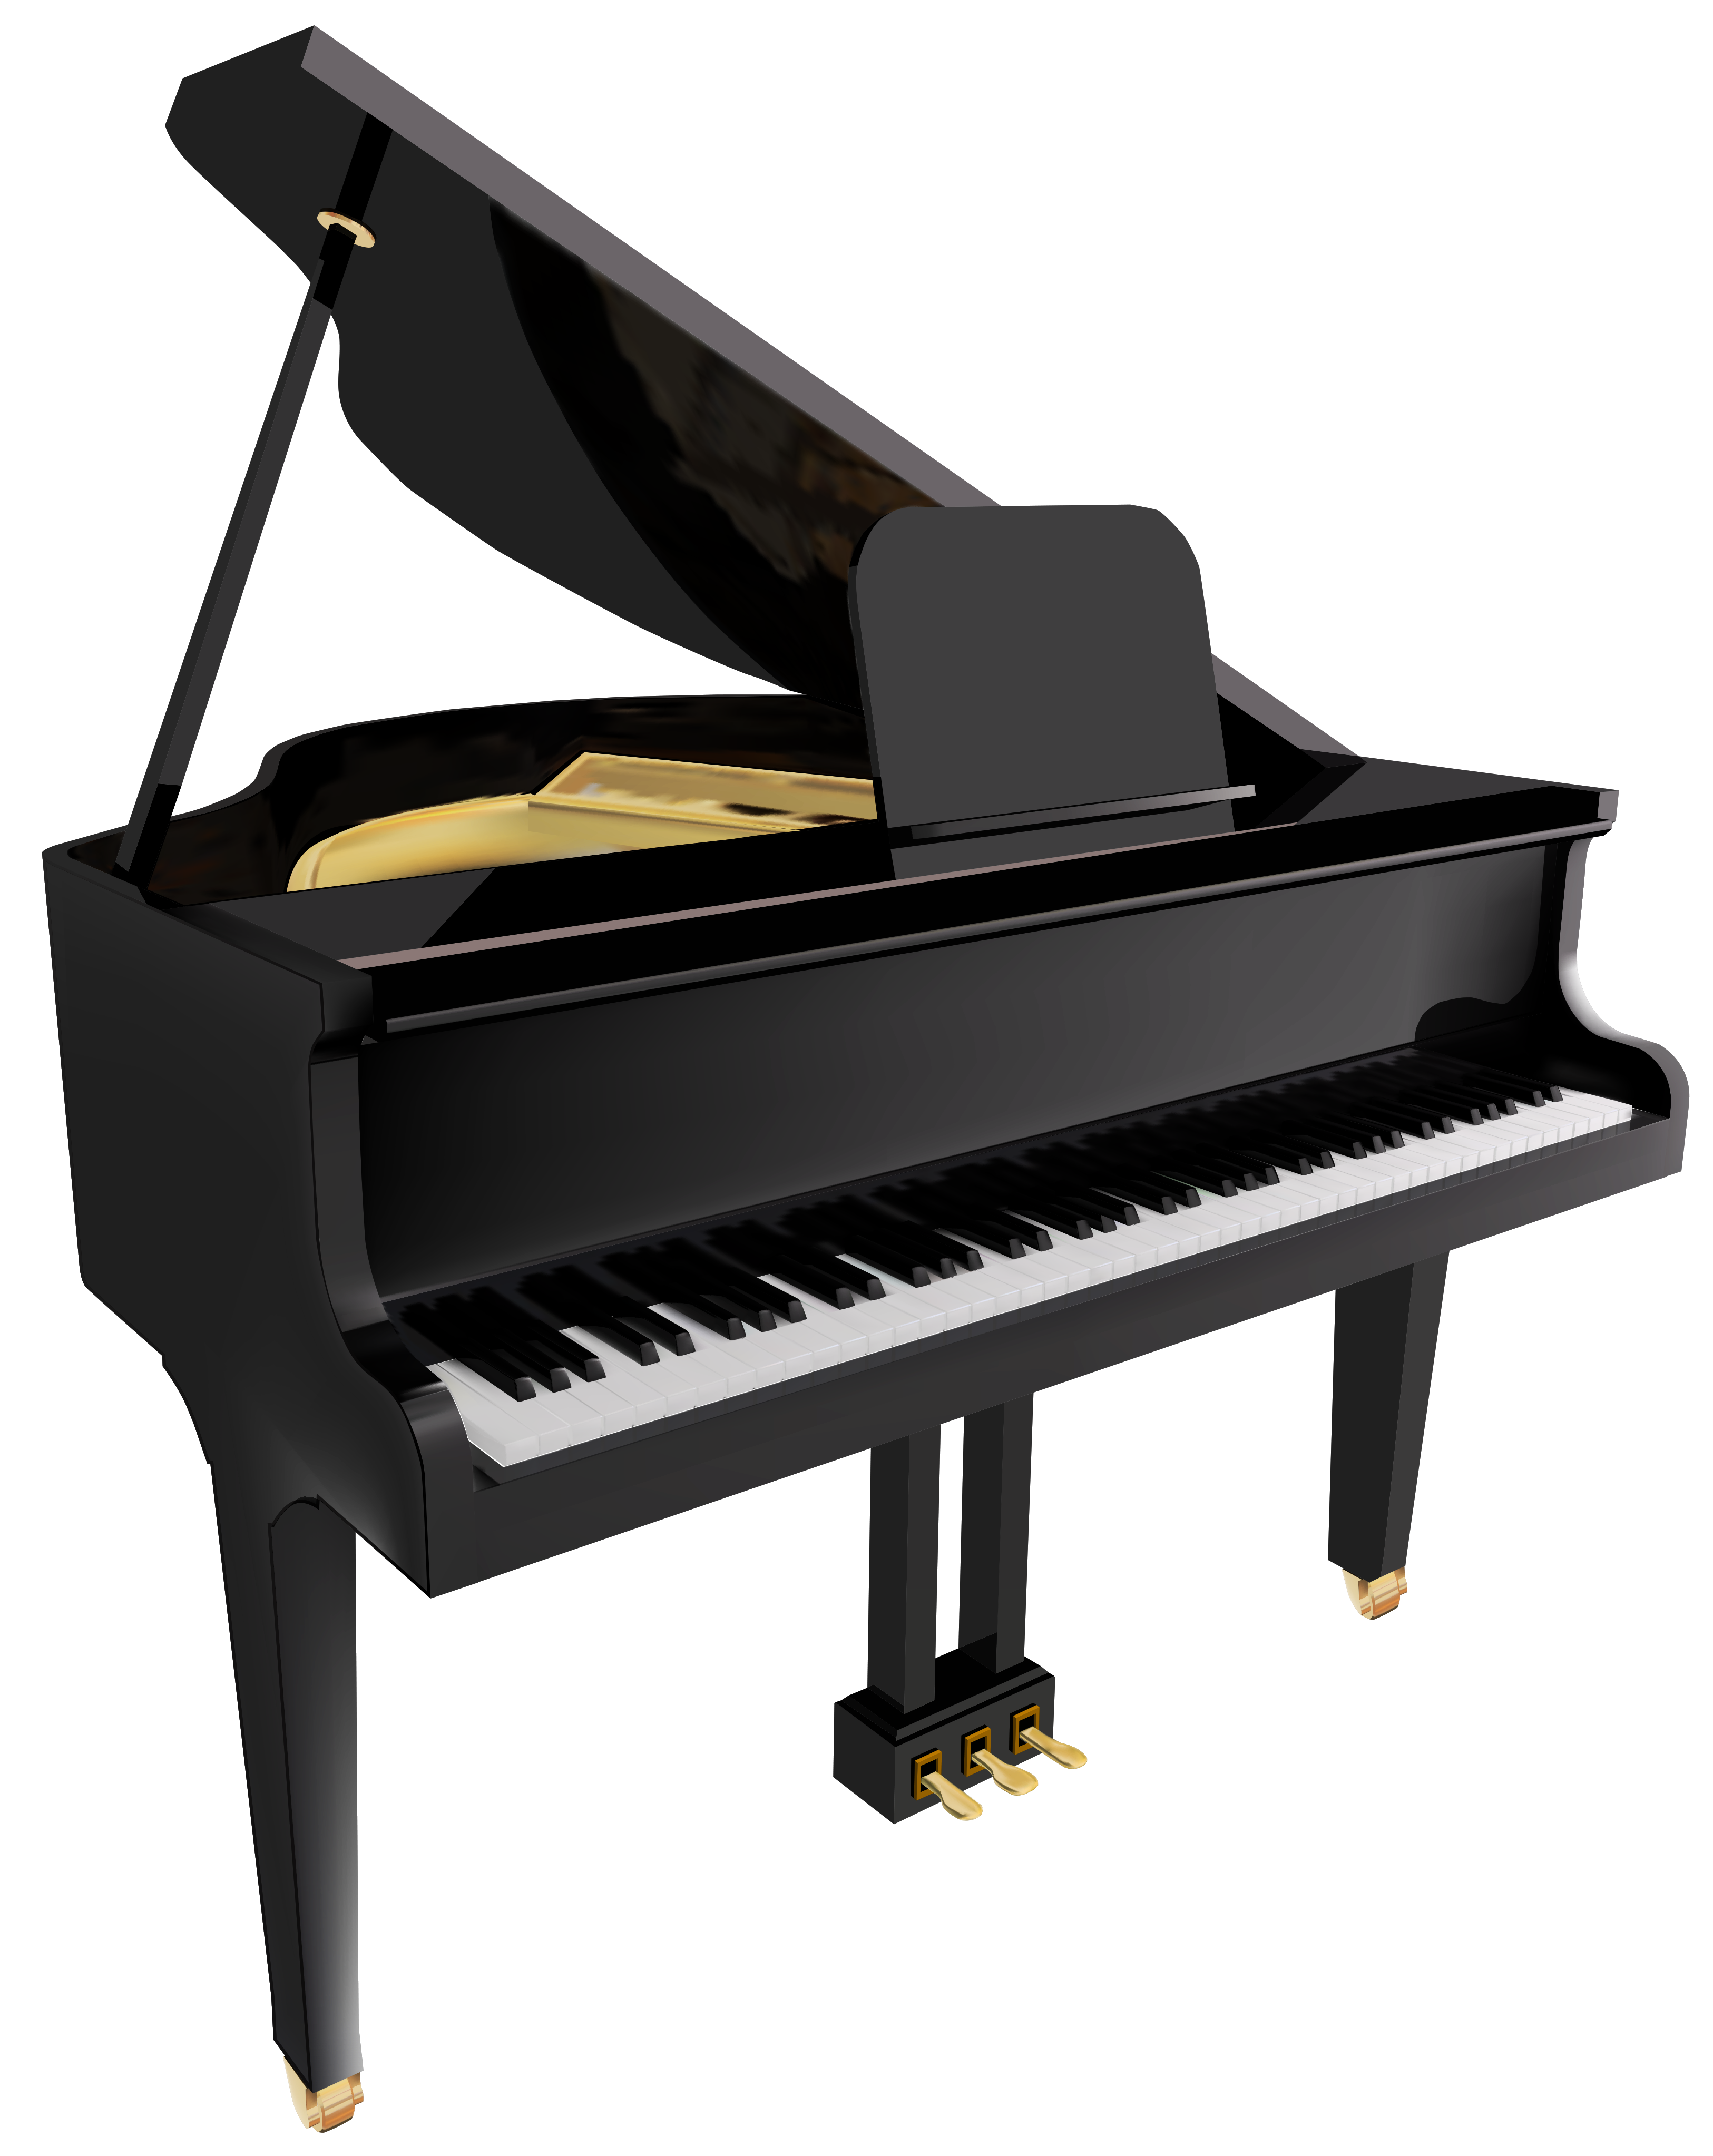 Piano png. Image free download